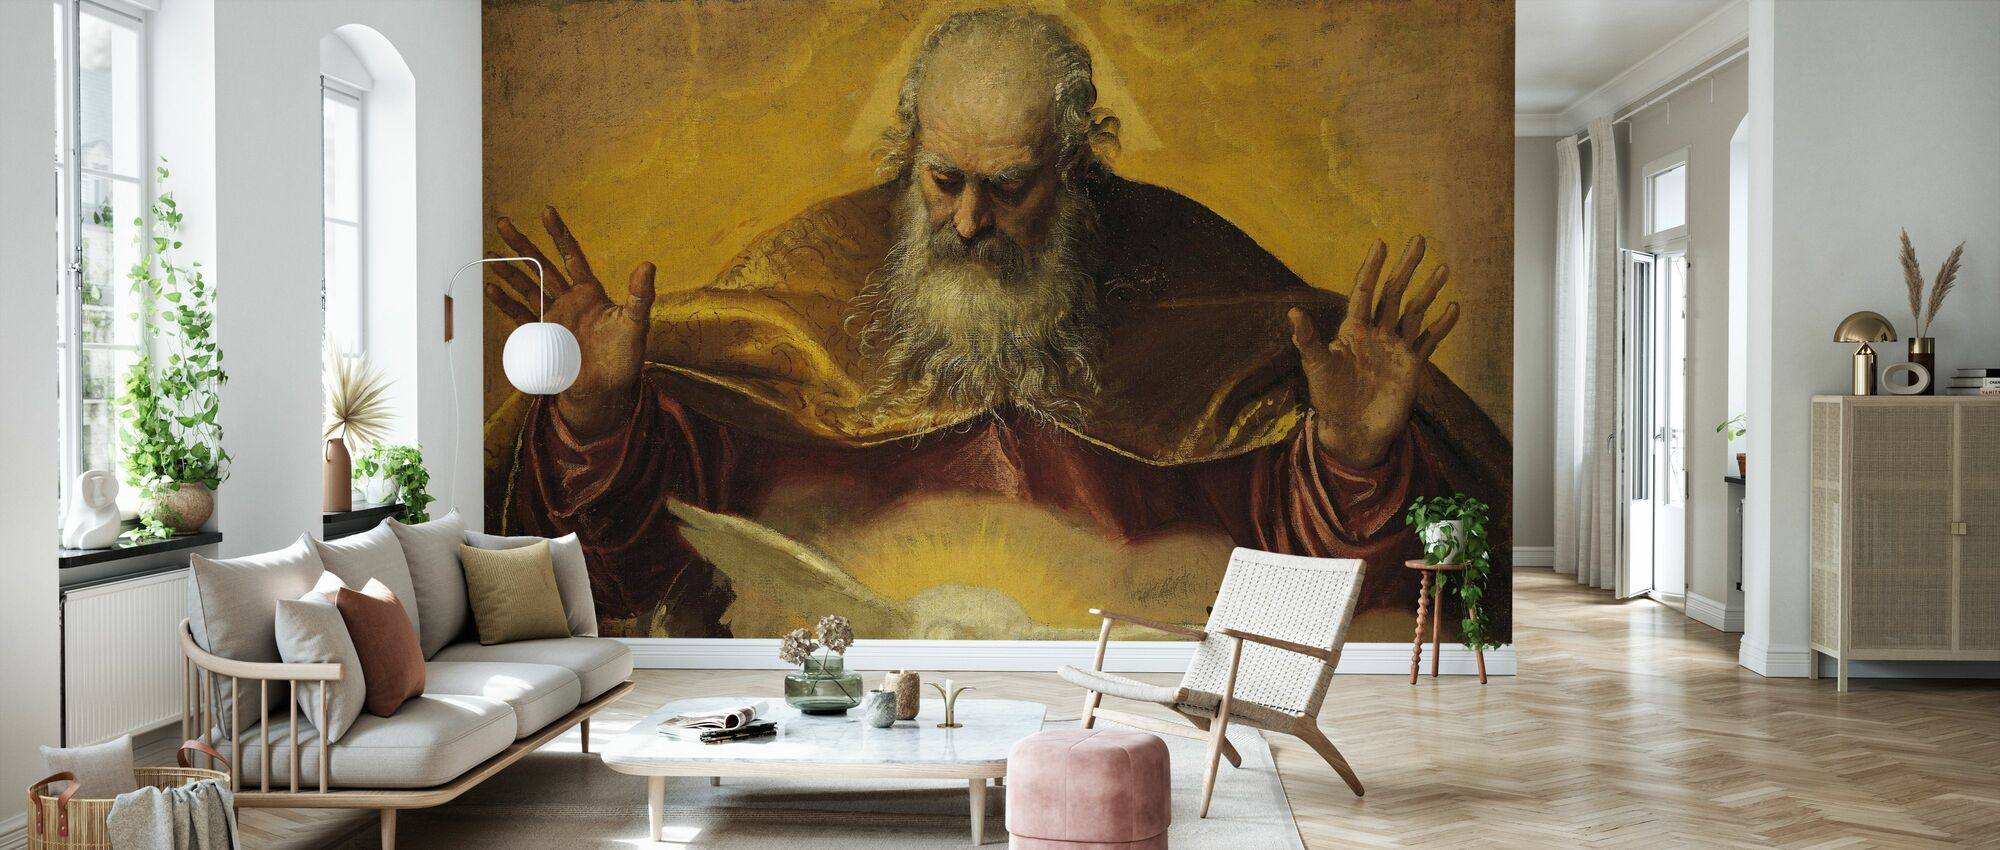 Eternal Father - Paolo Veronese - Wallpaper - Living Room